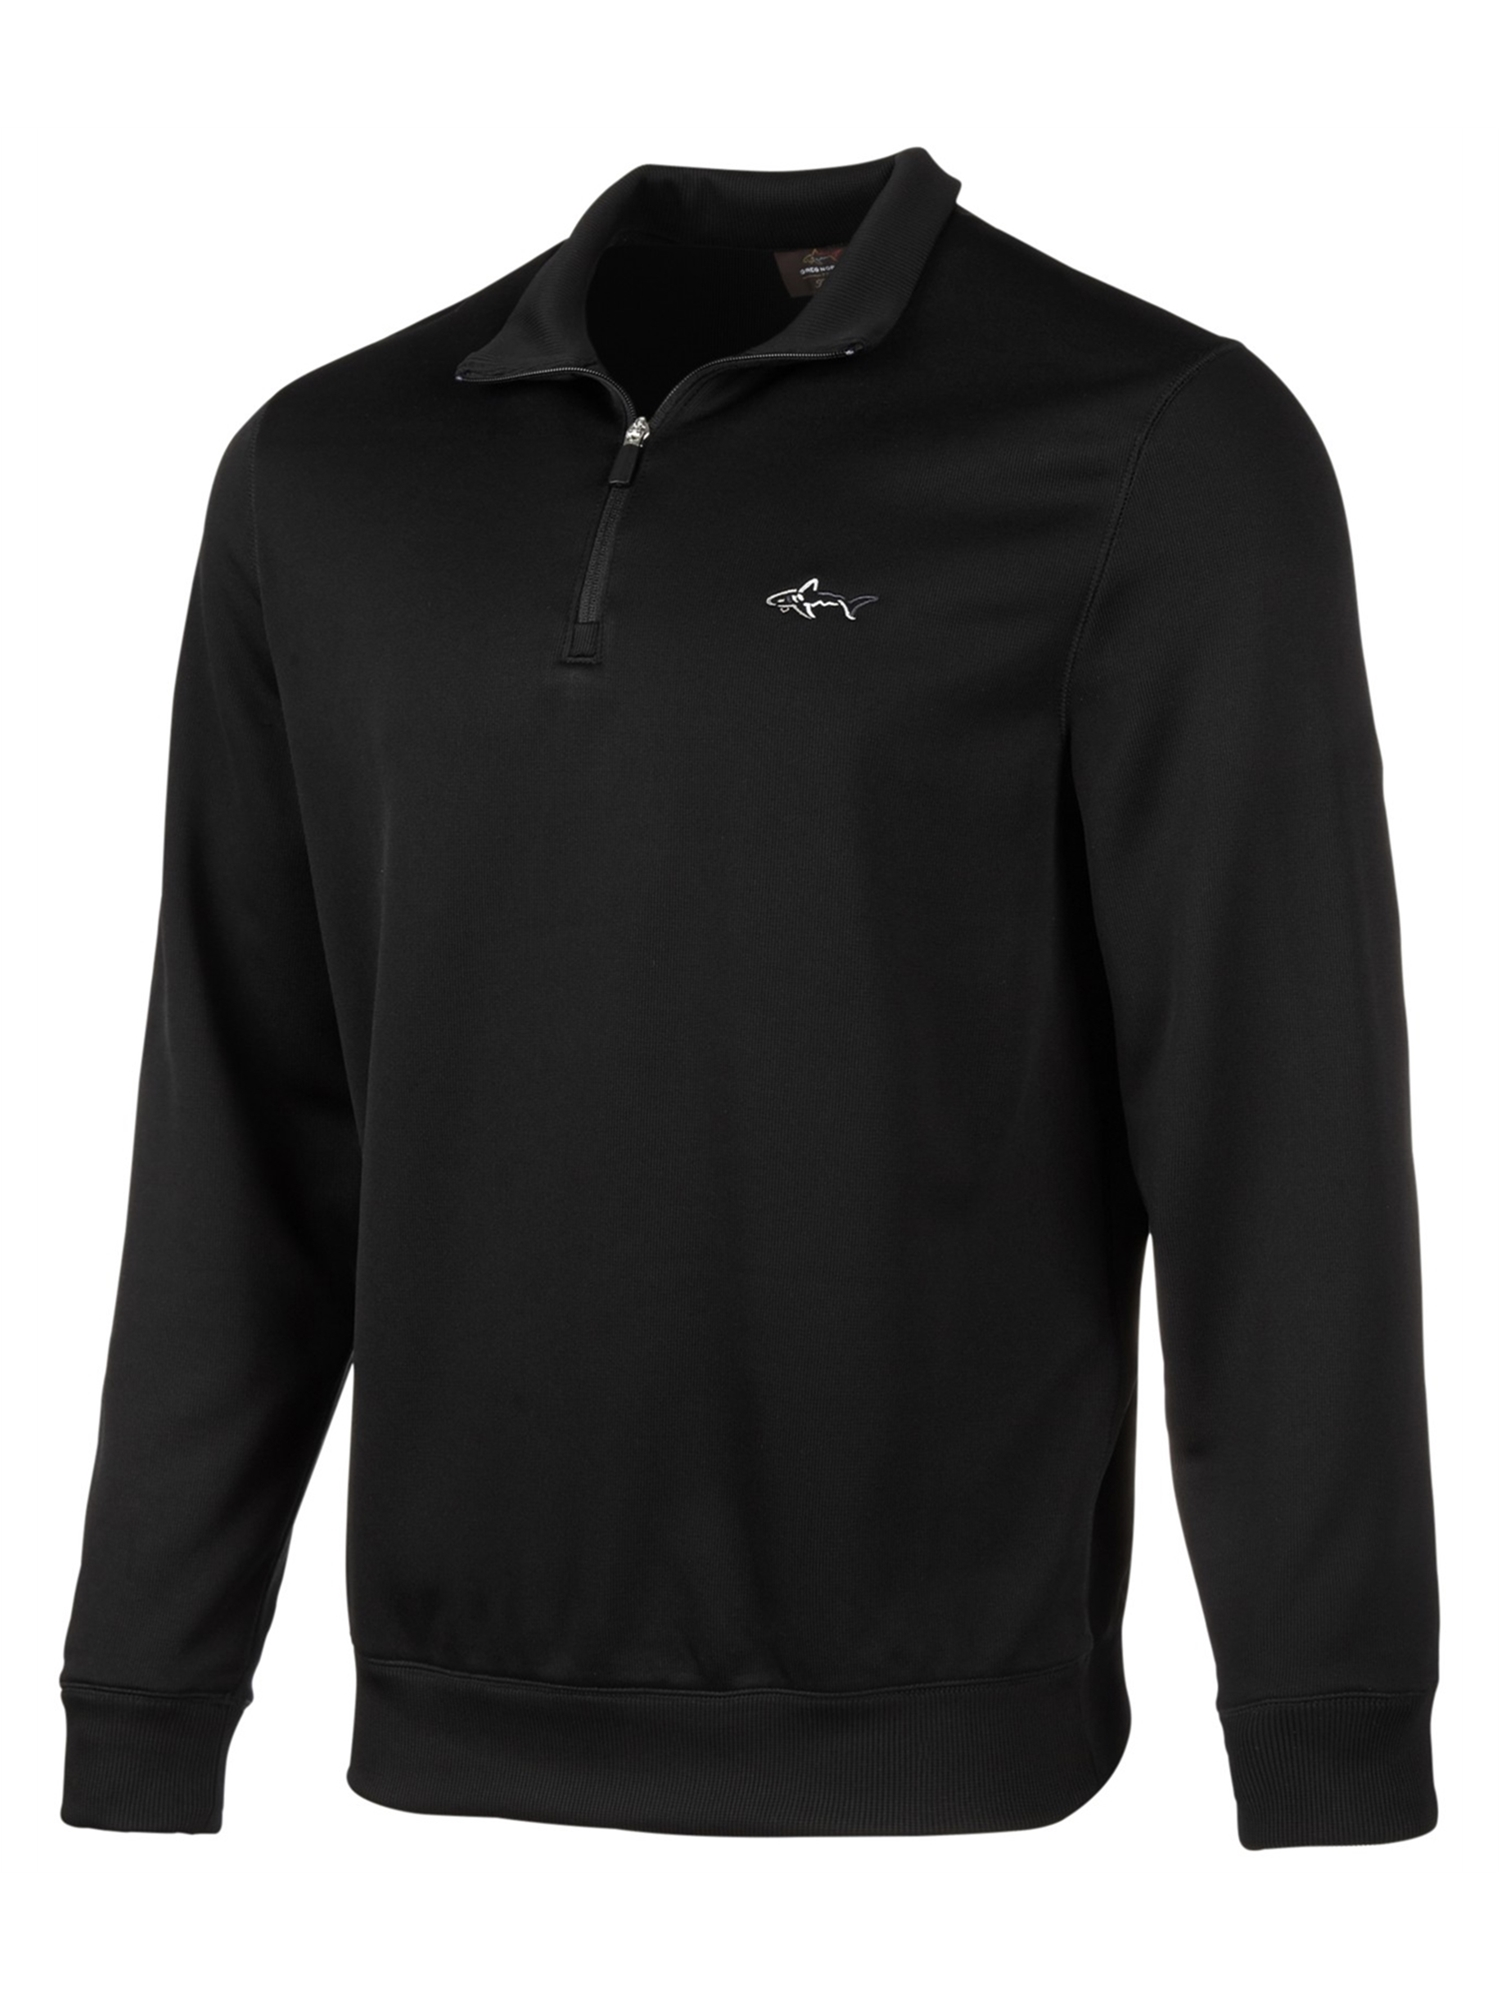 Greg Norman Sweater